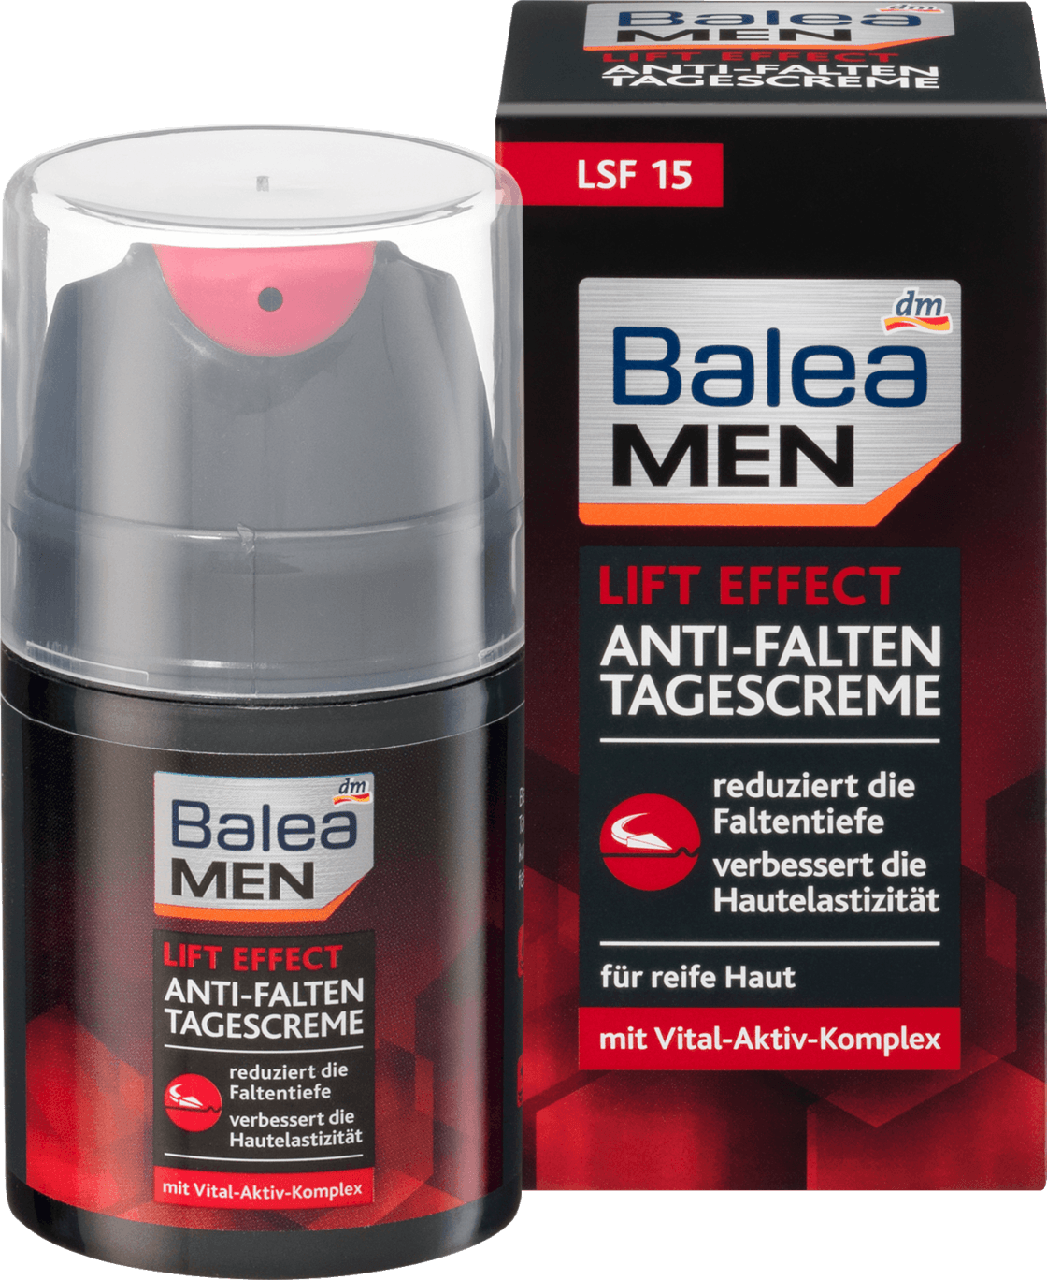 Дневной крем для лица Balea men Lift Effect Anti-Falten, 50 мл.